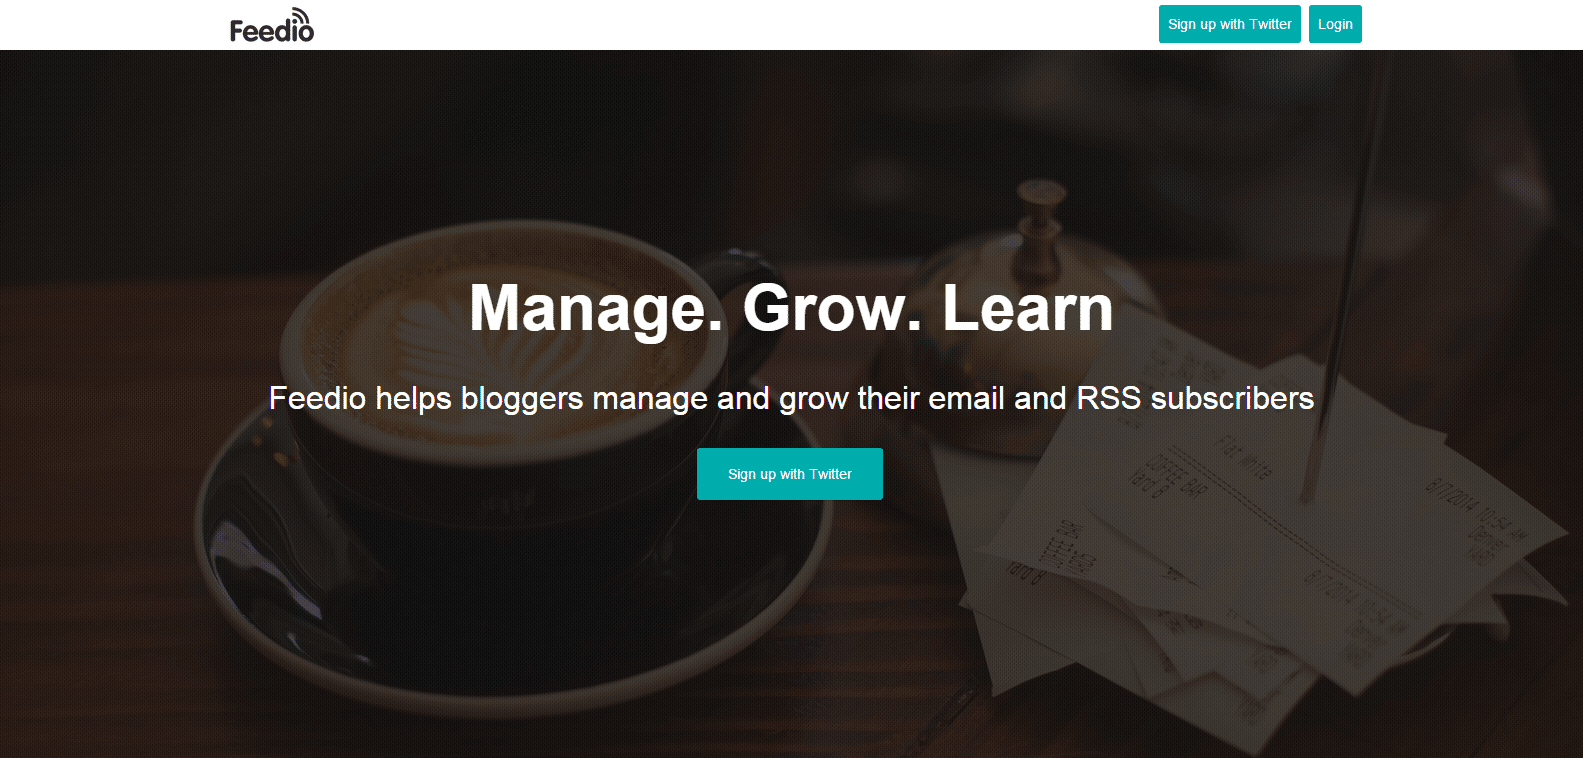 Feedio - Manage and grow your email and RSS subscribers